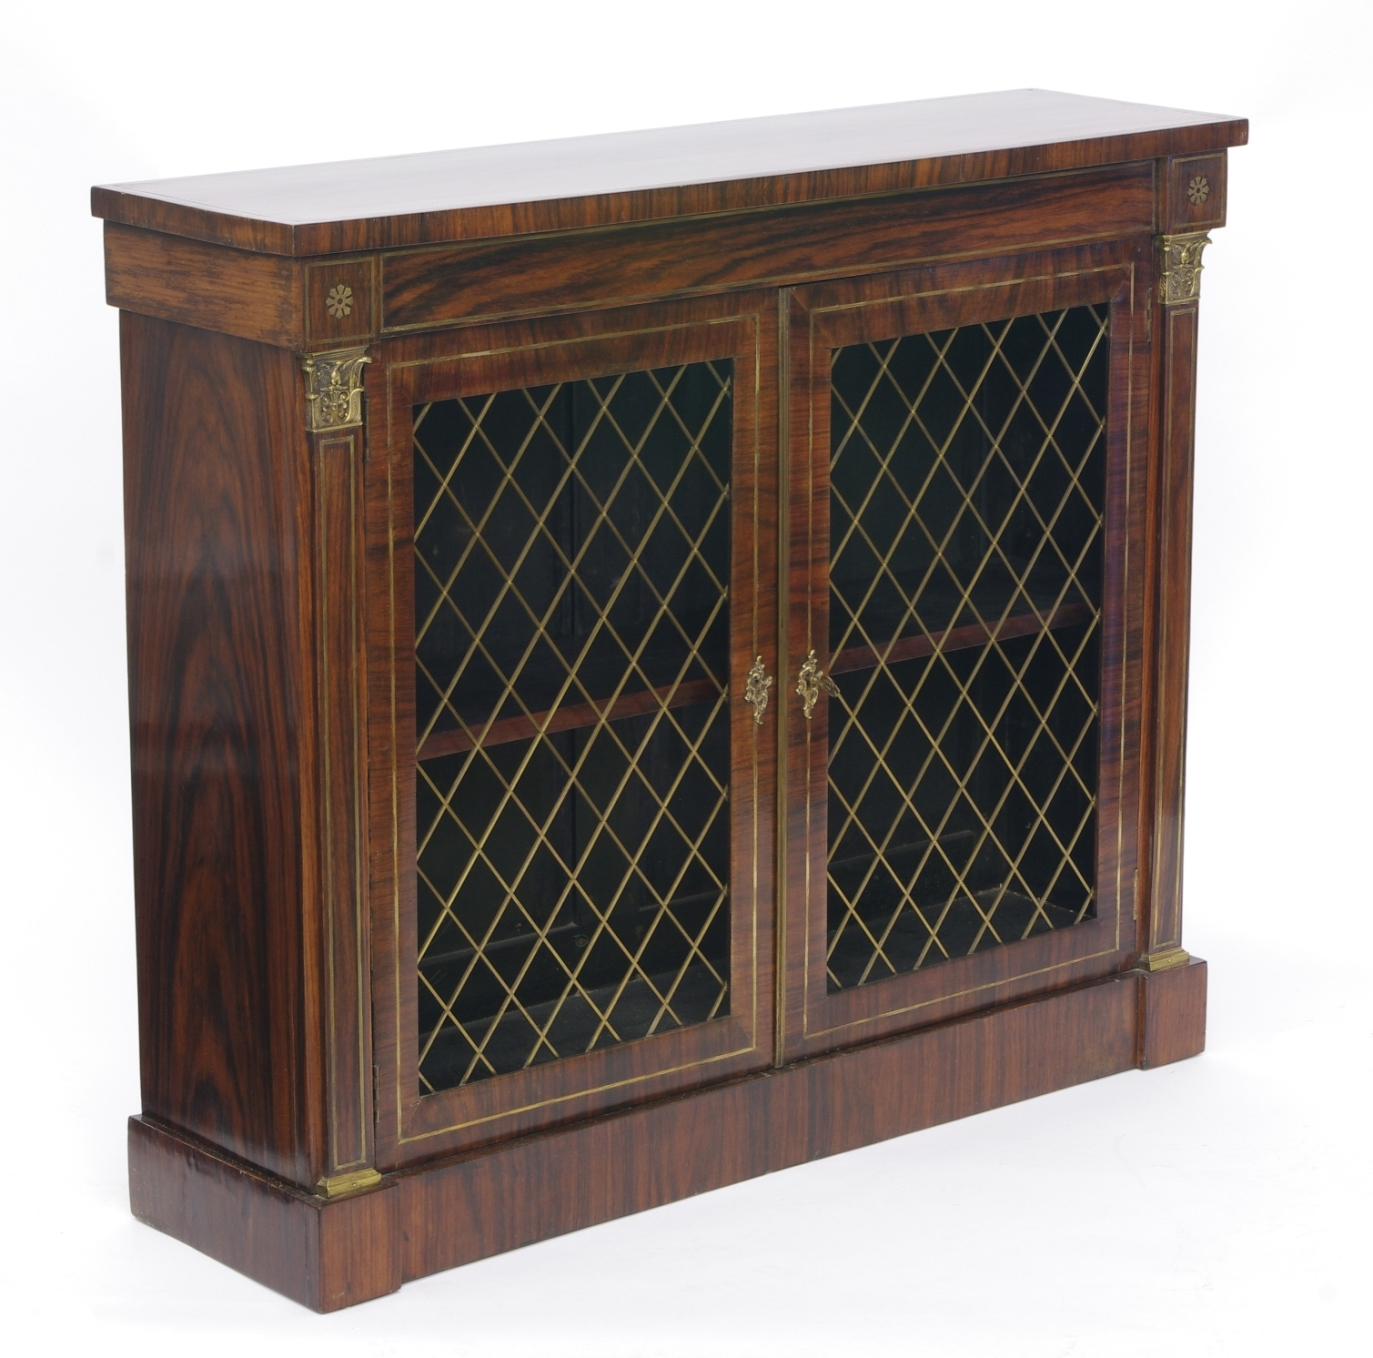 View 2: Regency Rosewood Bookcase Cabinet, c. 1820